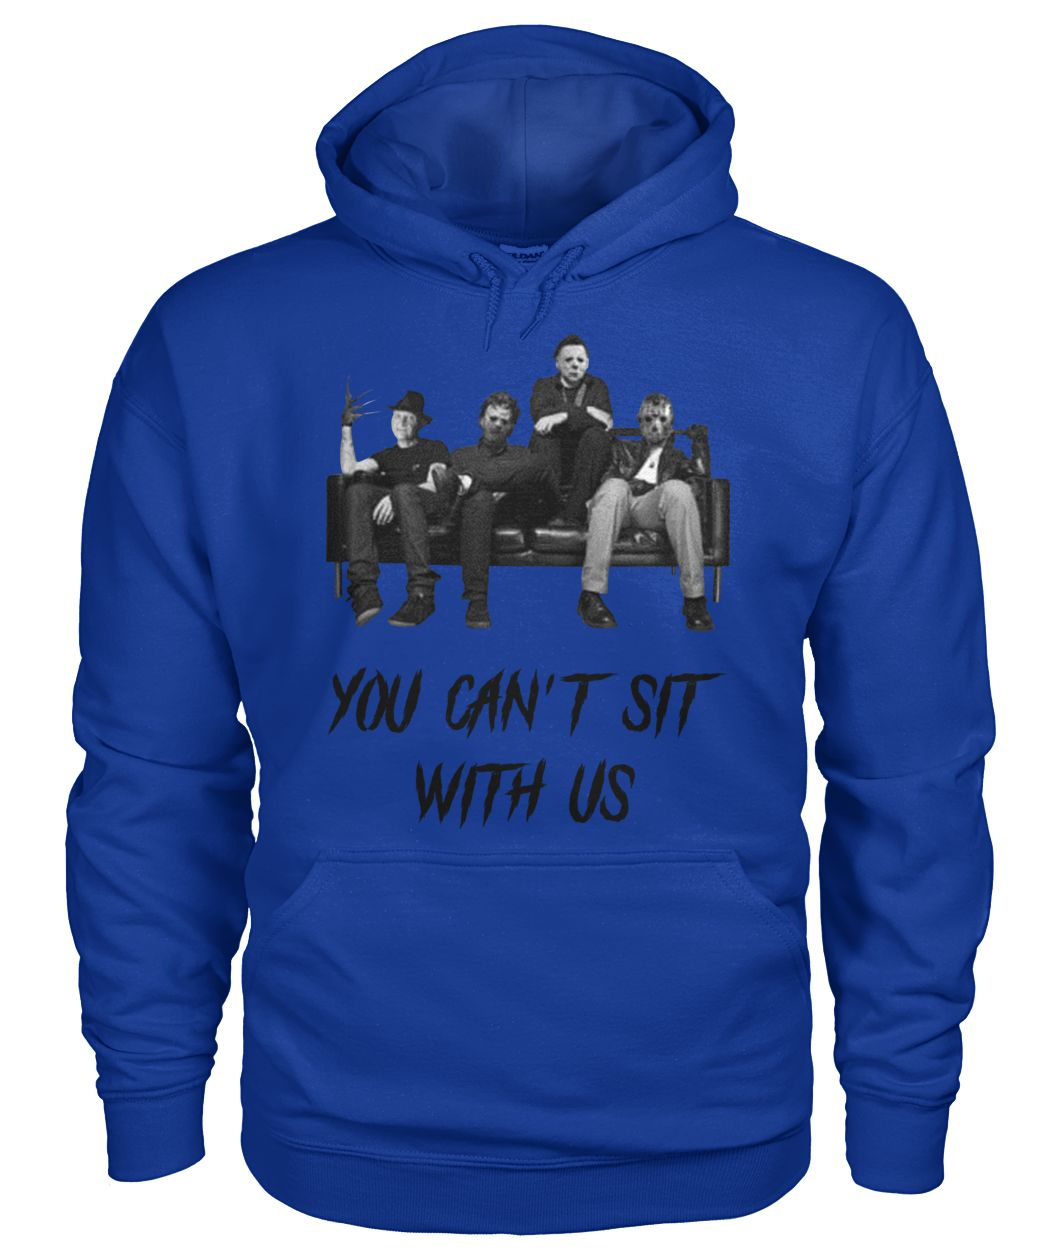 Freddy Jason Michael Myers And Leatherface you can't sit with us gildan hoodie